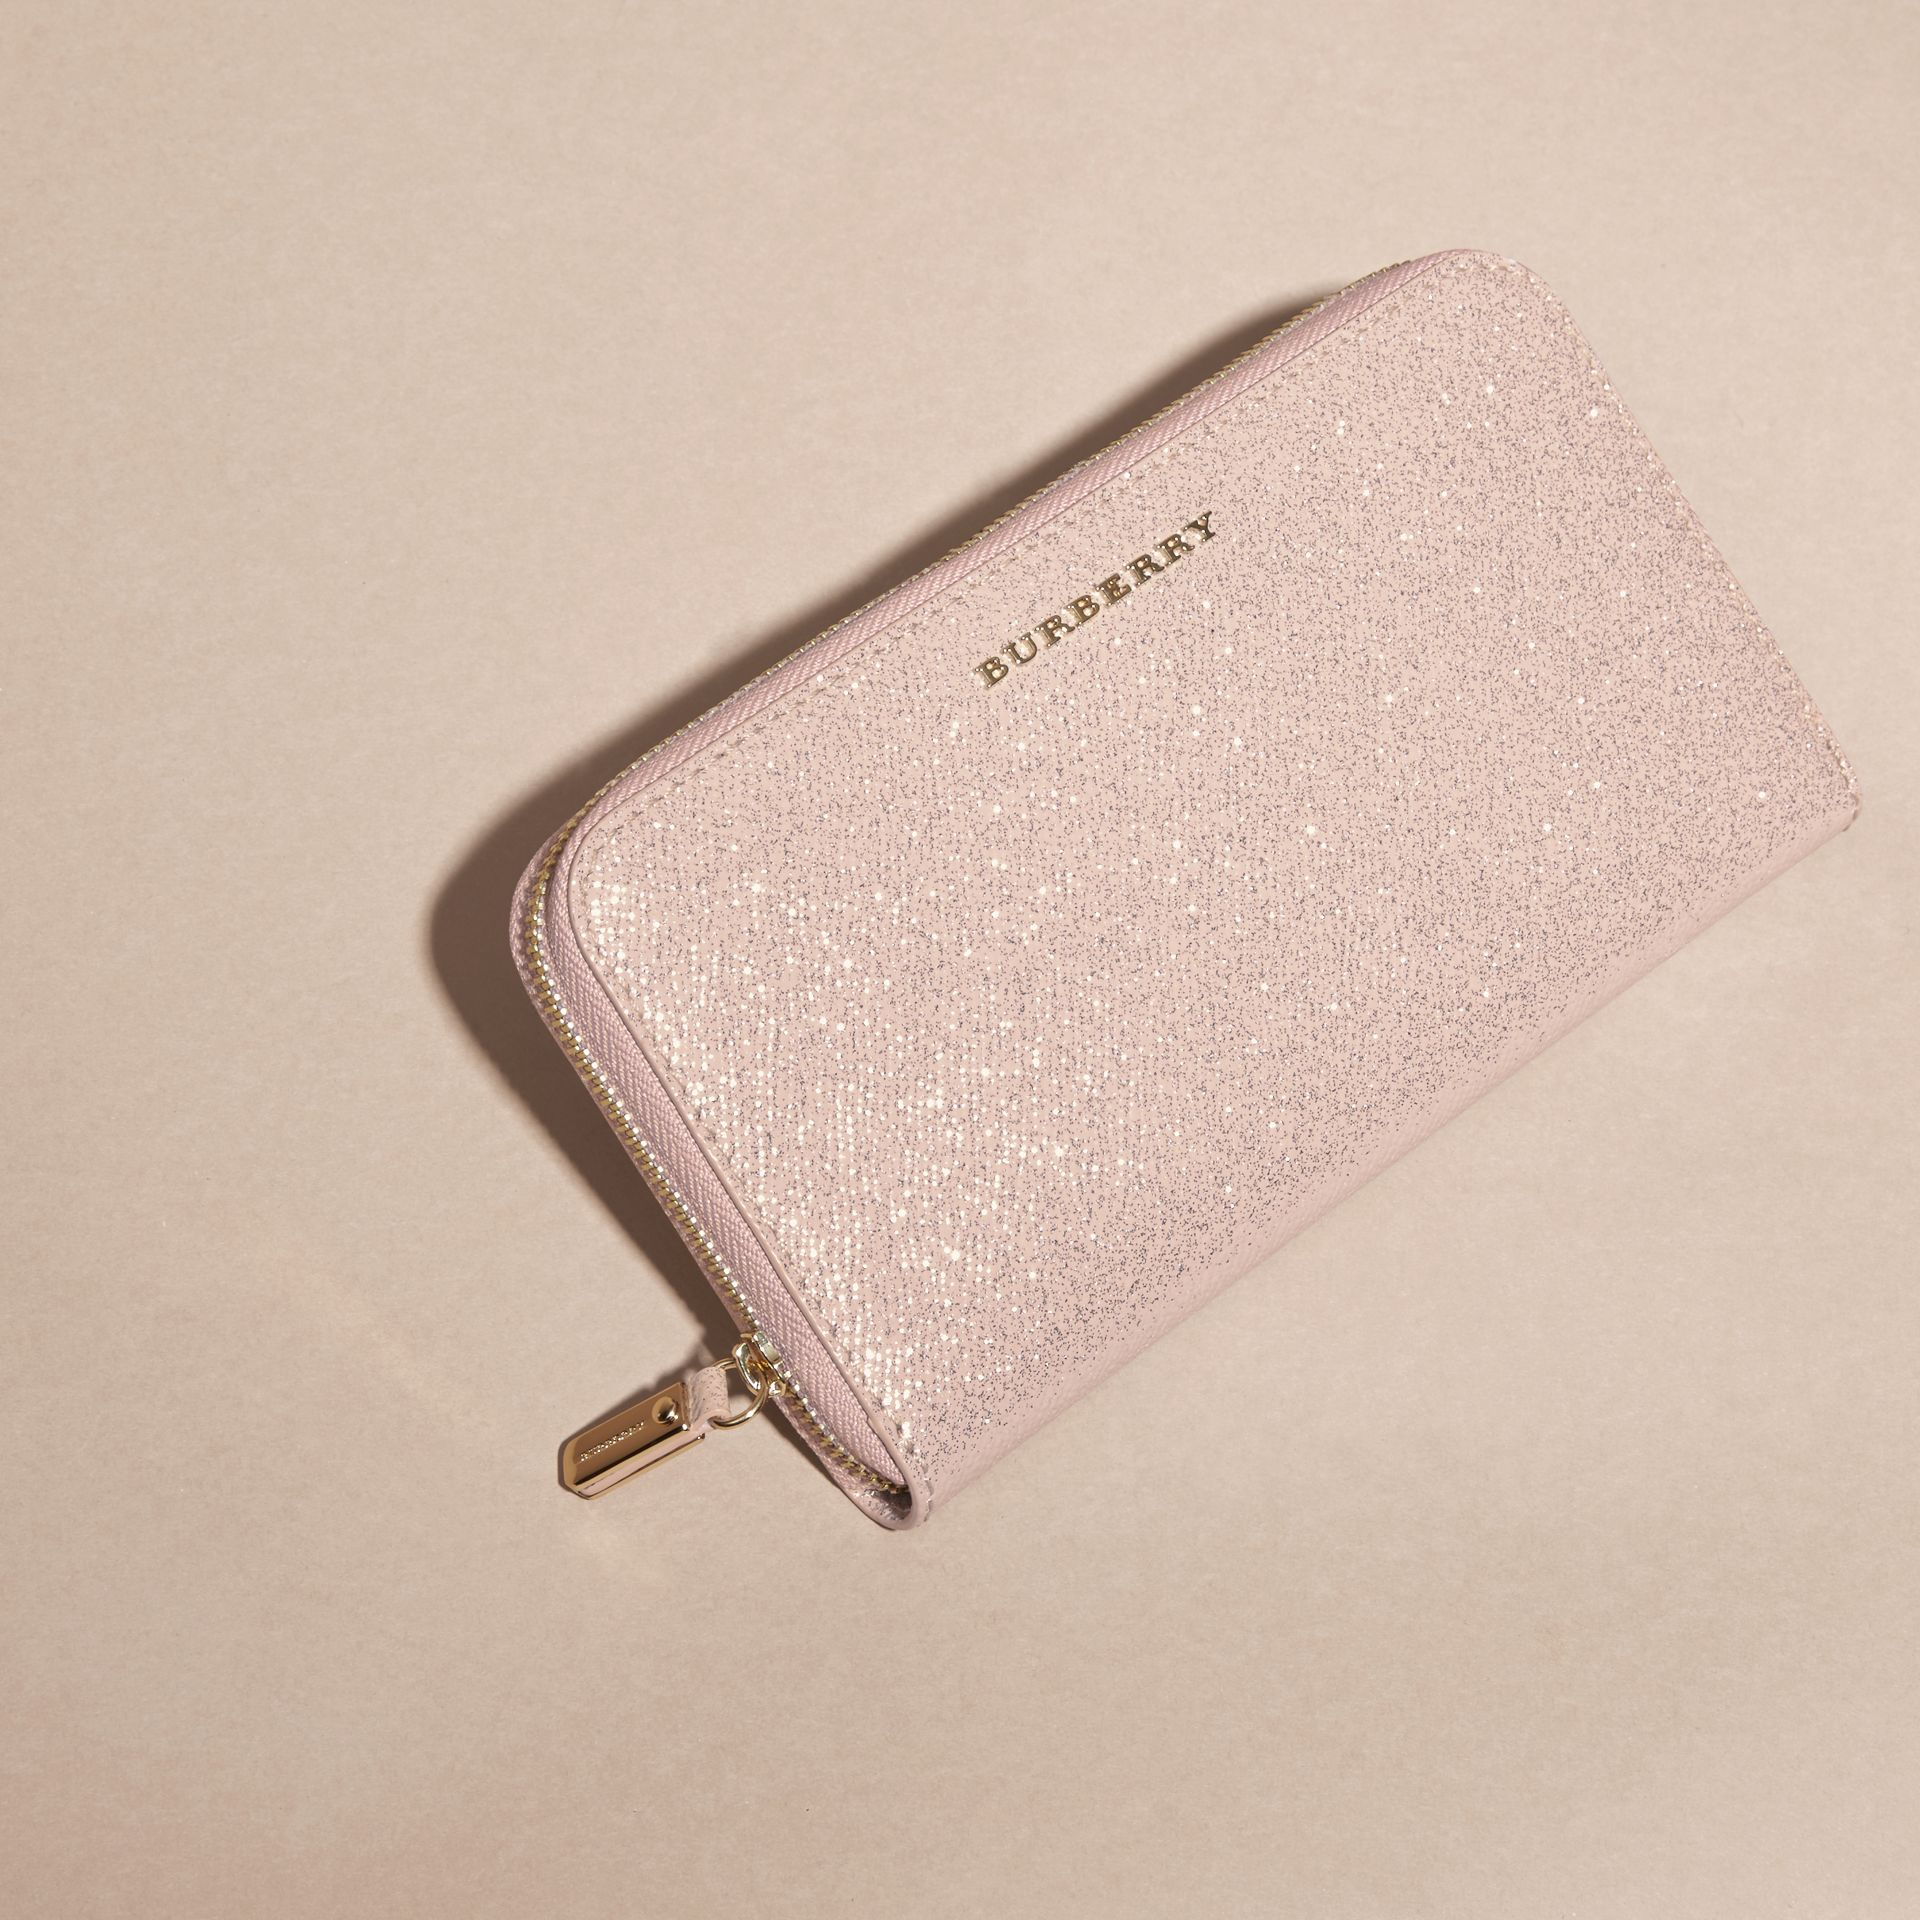 Pale orchid Glitter Patent London Leather Ziparound Wallet Pale Orchid - gallery image 3